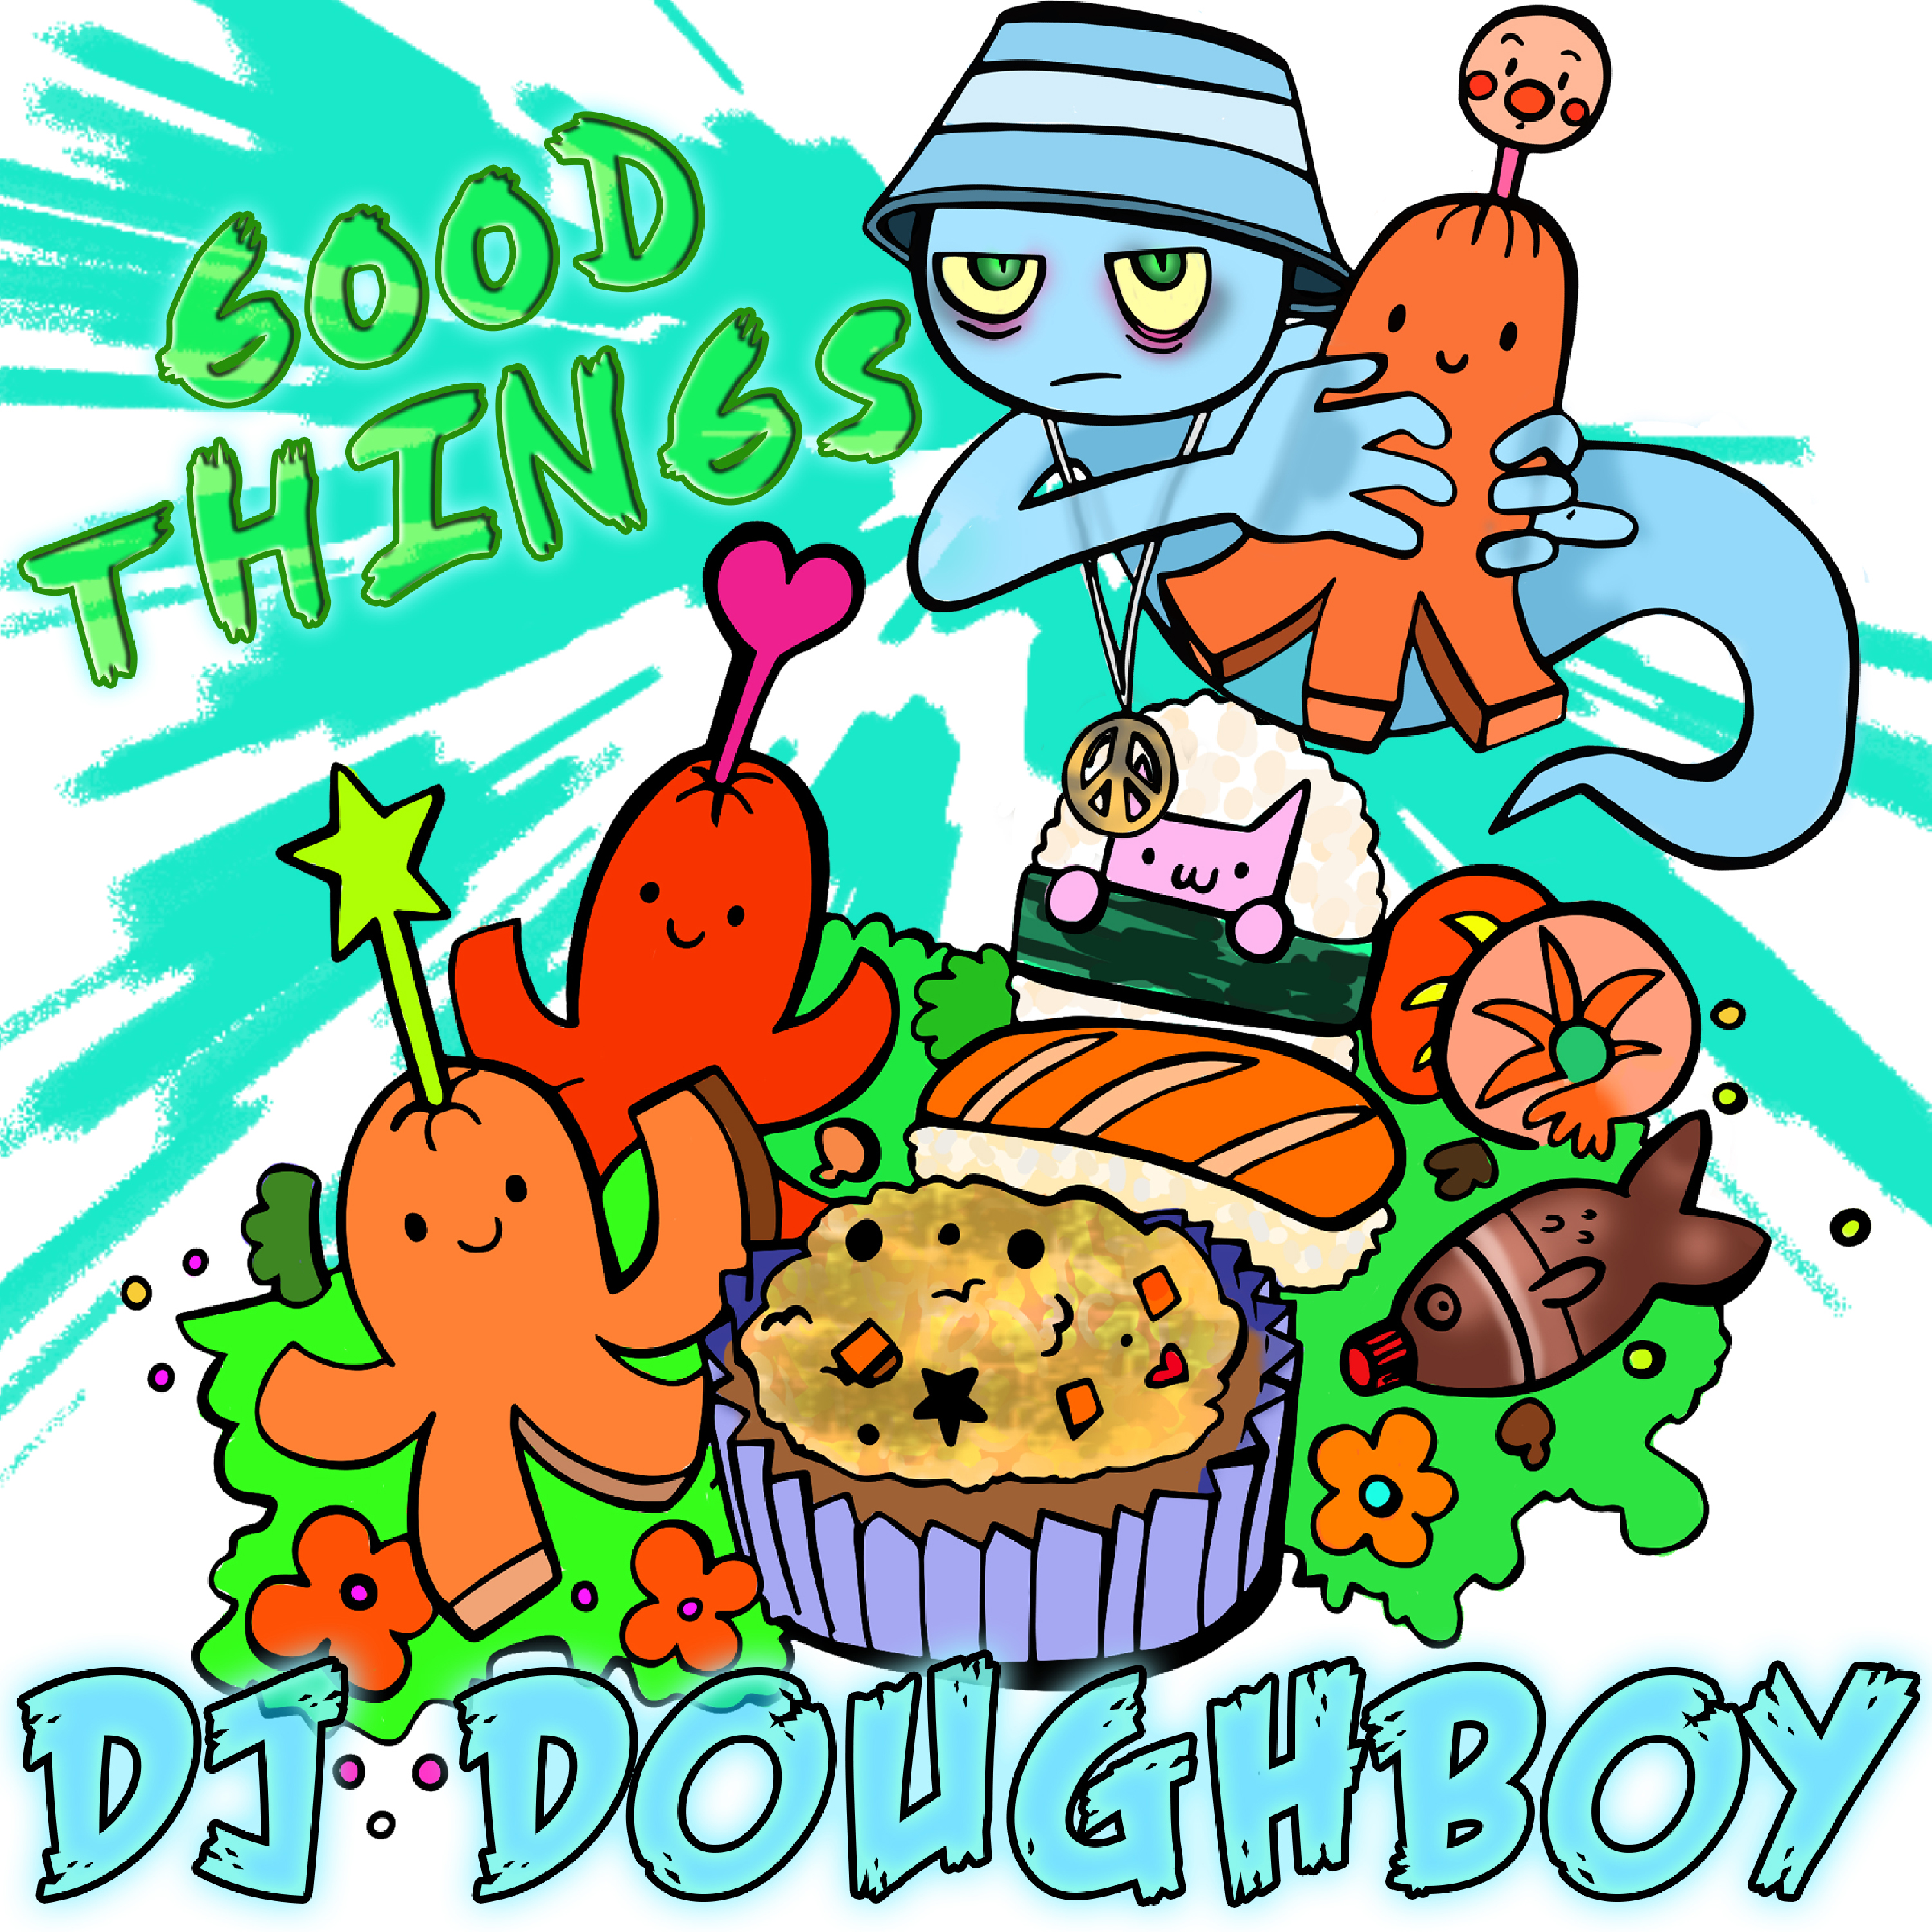 [KFA068] Doughboy - Good Things EP (Digital Only)